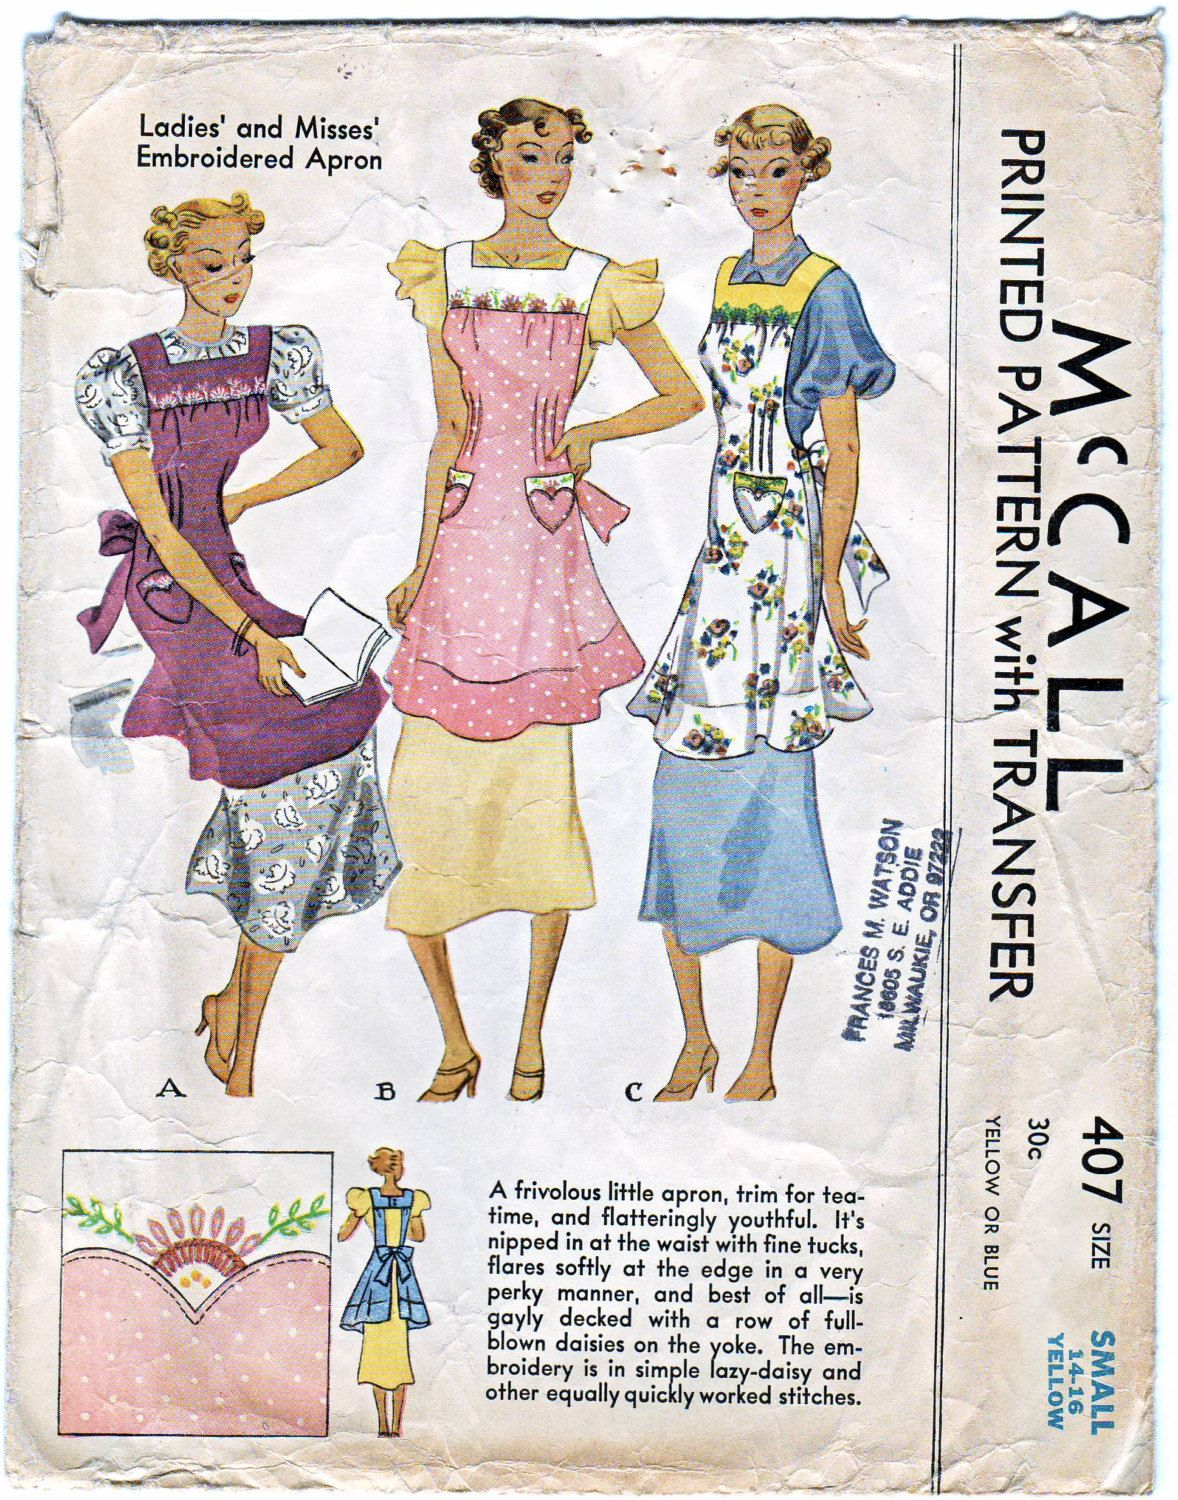 Vintage Orig 1930s McCall 407 Yoked Bib Pinafore Apron Nipped Waist Tucks Patch Pockets Embroidery Transfer Sewing Pattern Size Small by BizzieLizzies on Etsy